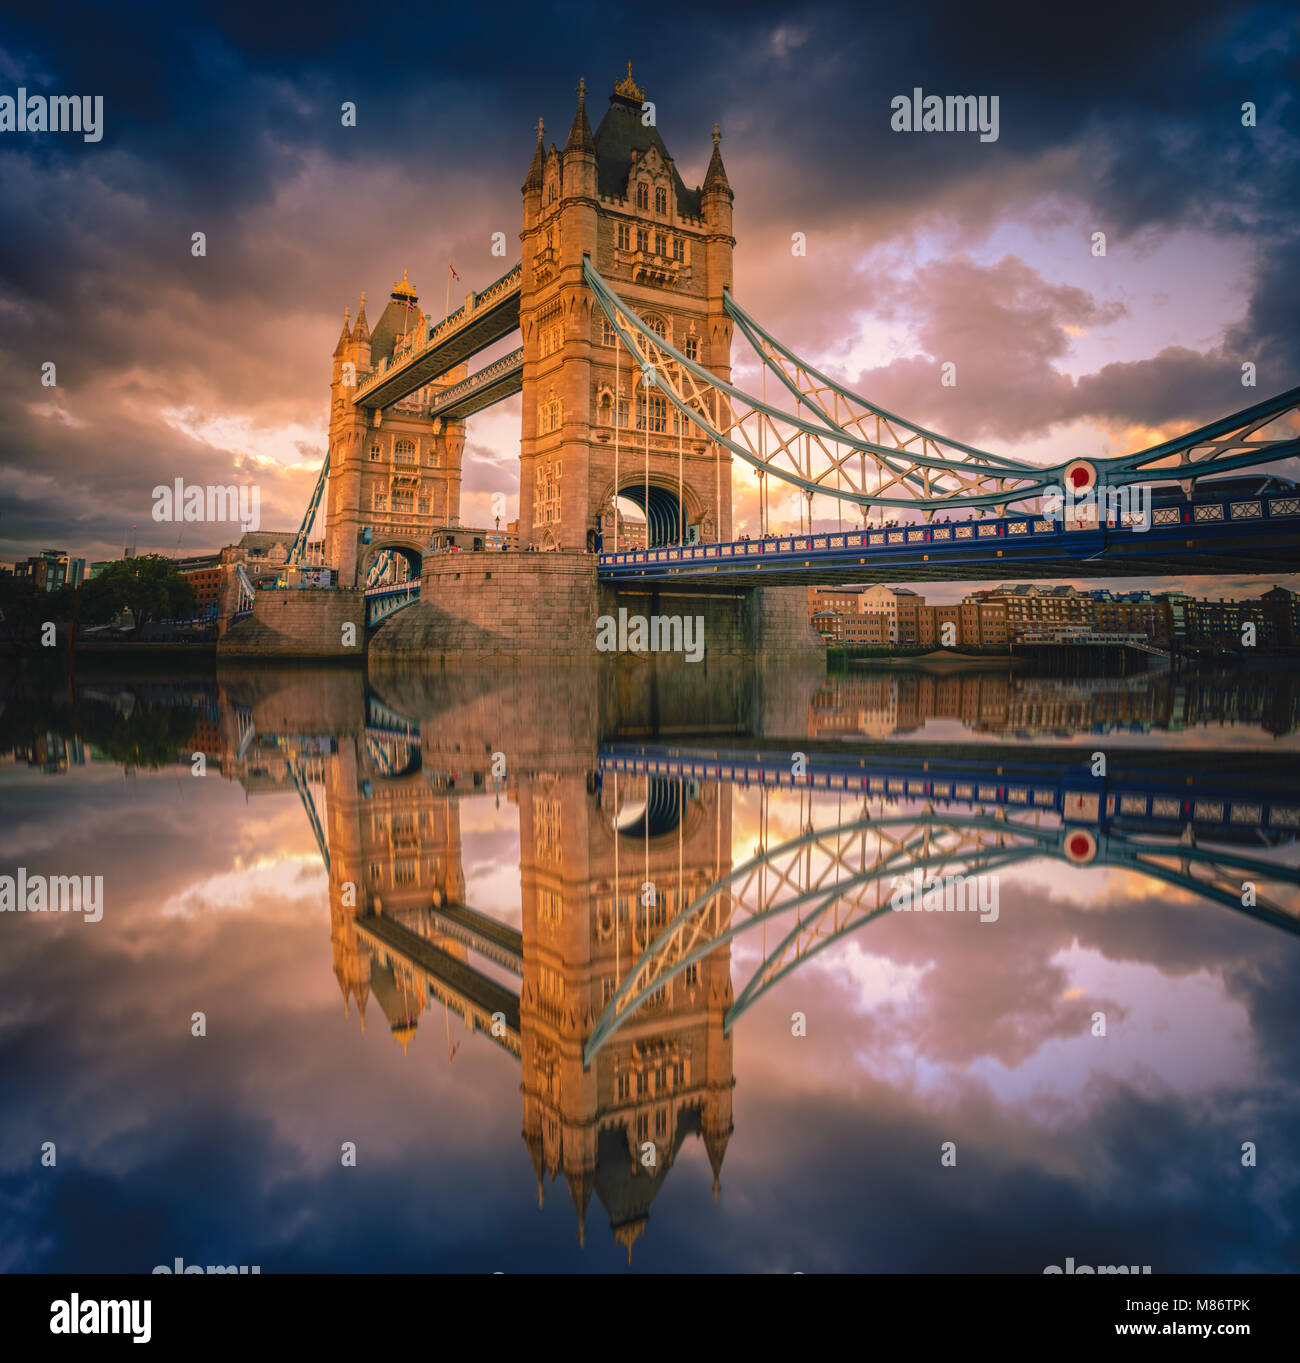 Tower Bridge landmark in London city at sunset in UK. - Stock Image